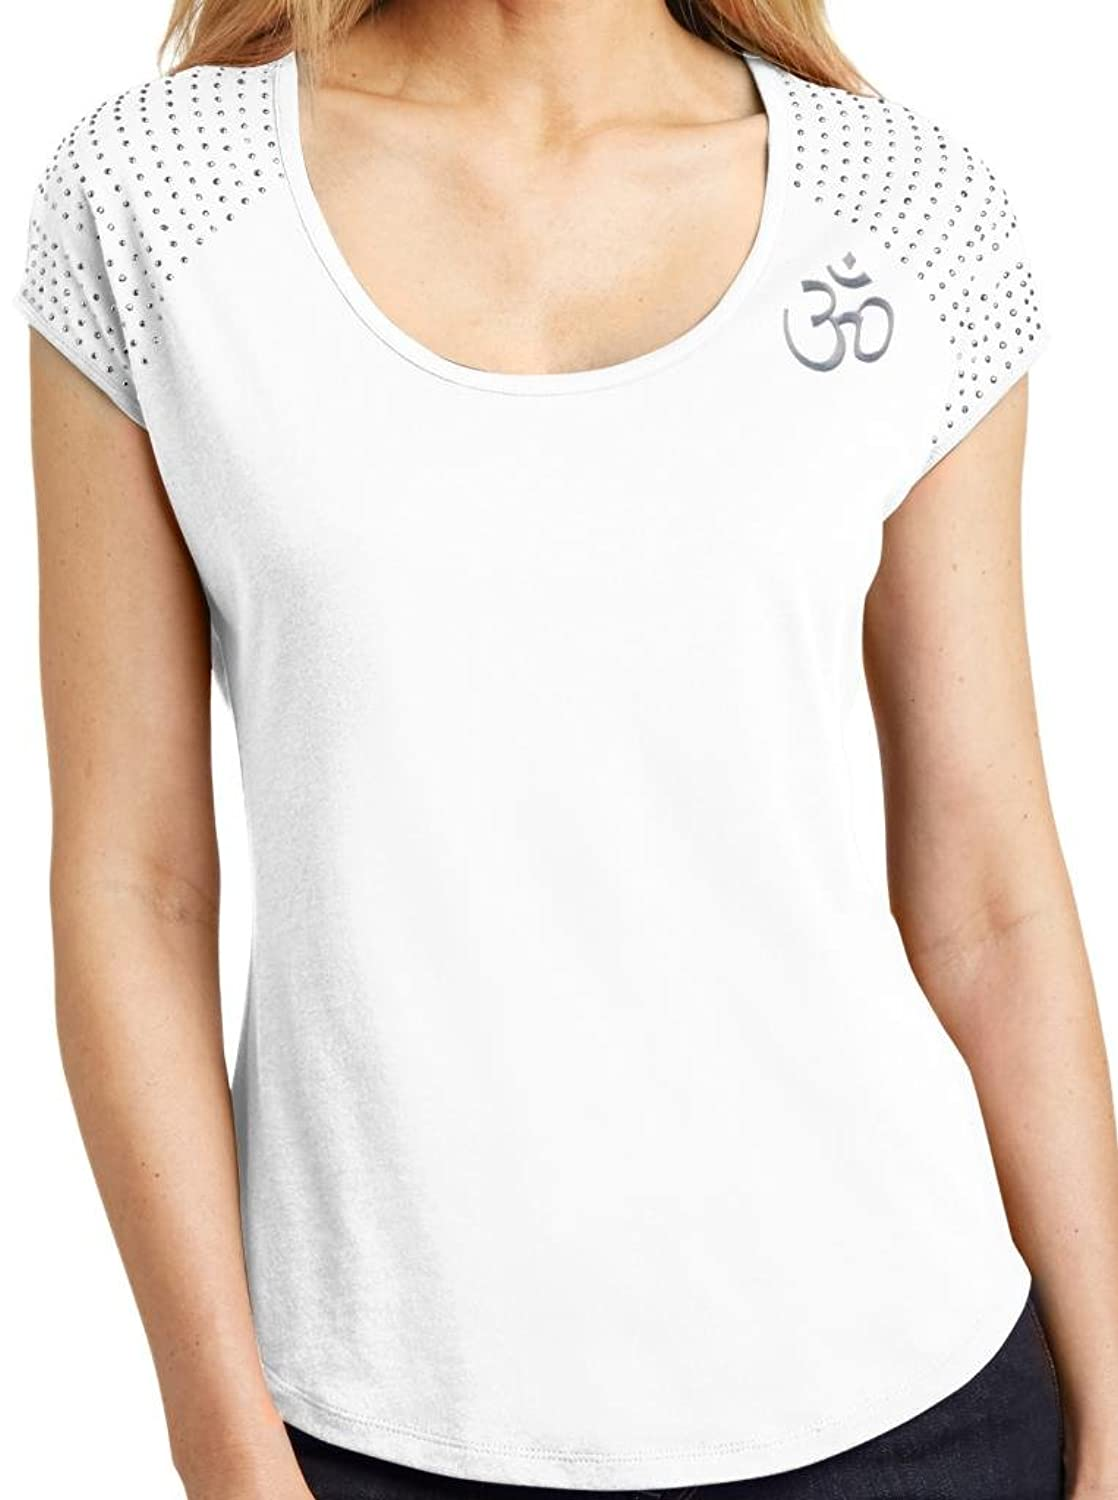 Yoga Clothing For You Ladies Hindu Om Symbol Bling Shirt